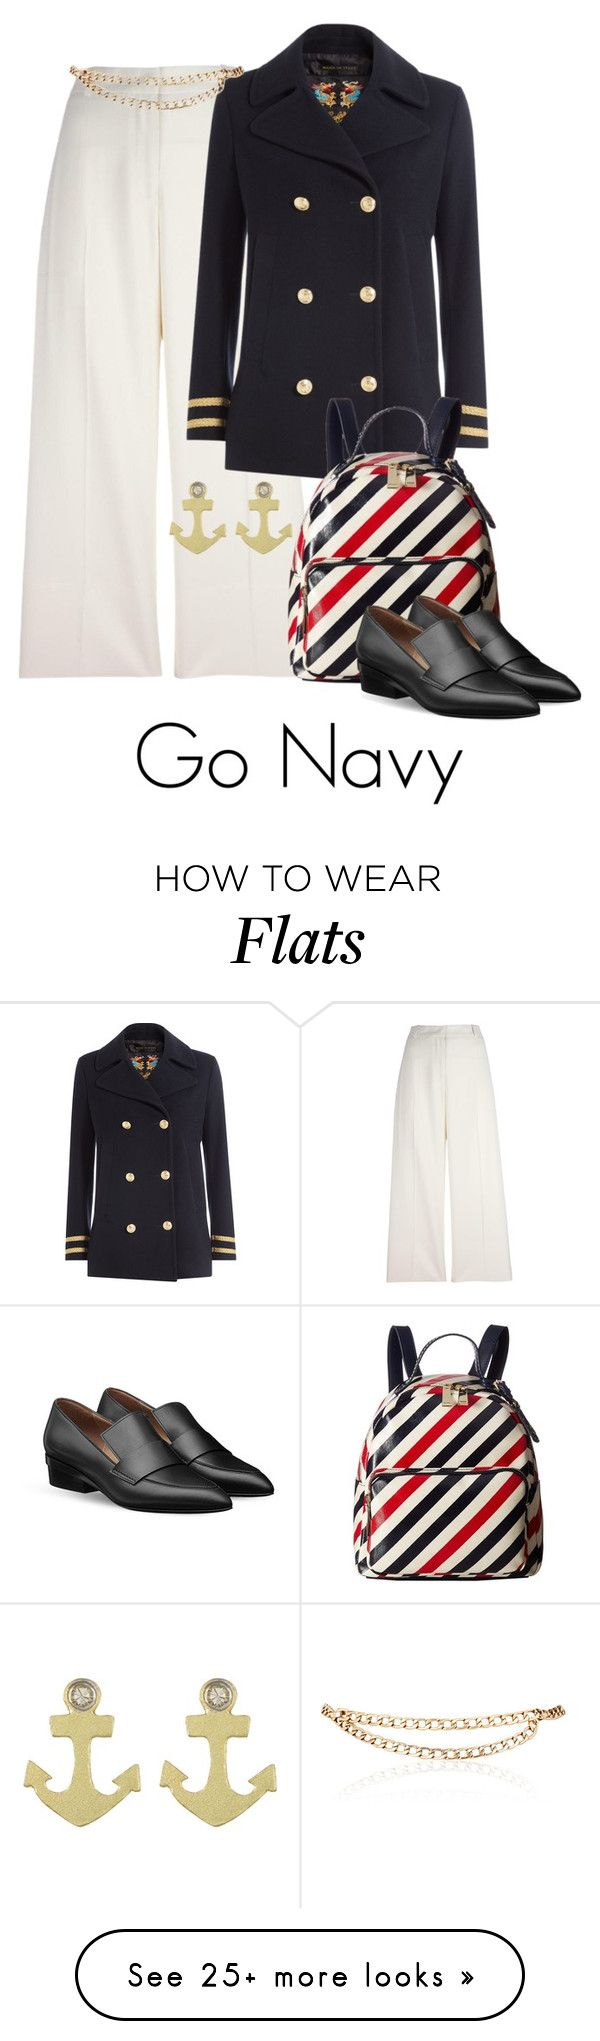 """""""Go NAVY Military Look!"""" by shamrockclover on Polyvore featuring Ermanno Scervino, The Seafarer, Maison Mayle, Meira T and Tommy Hilfiger"""